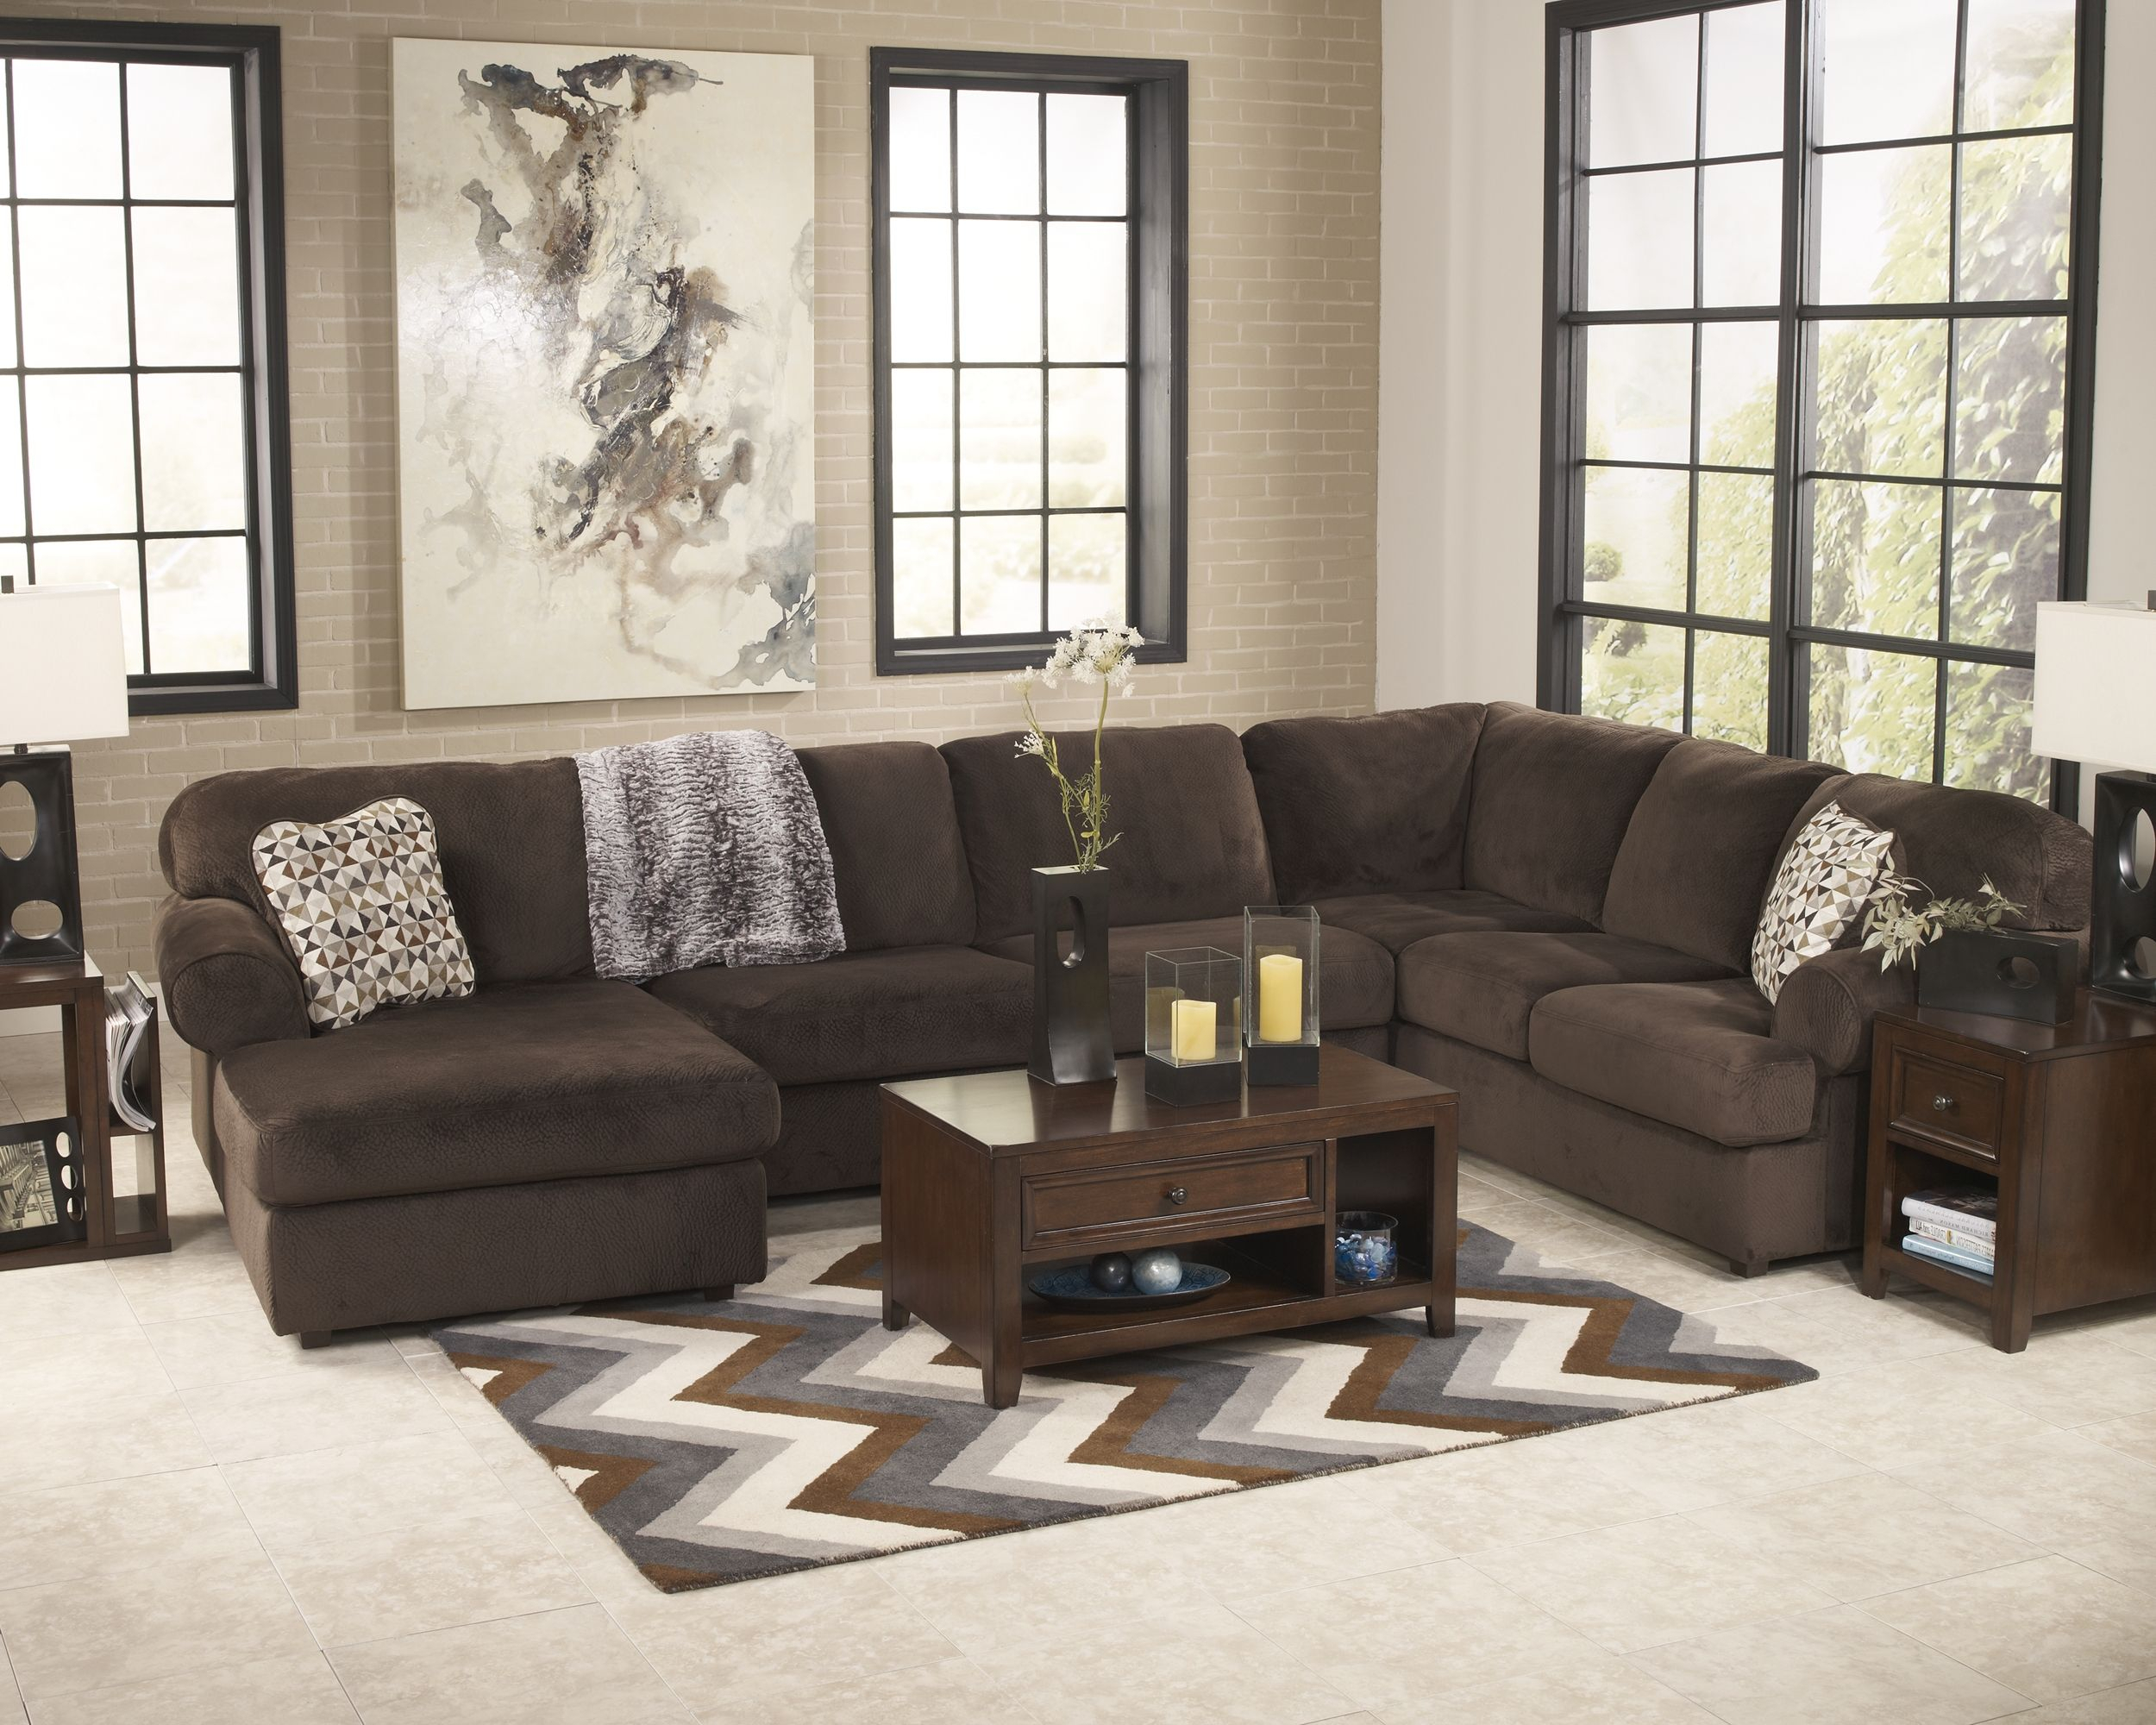 Jessa Place 3 Piece Sectional, Chocolate | Sectional Sofa For Norfolk Chocolate 3 Piece Sectionals With Raf Chaise (View 15 of 15)